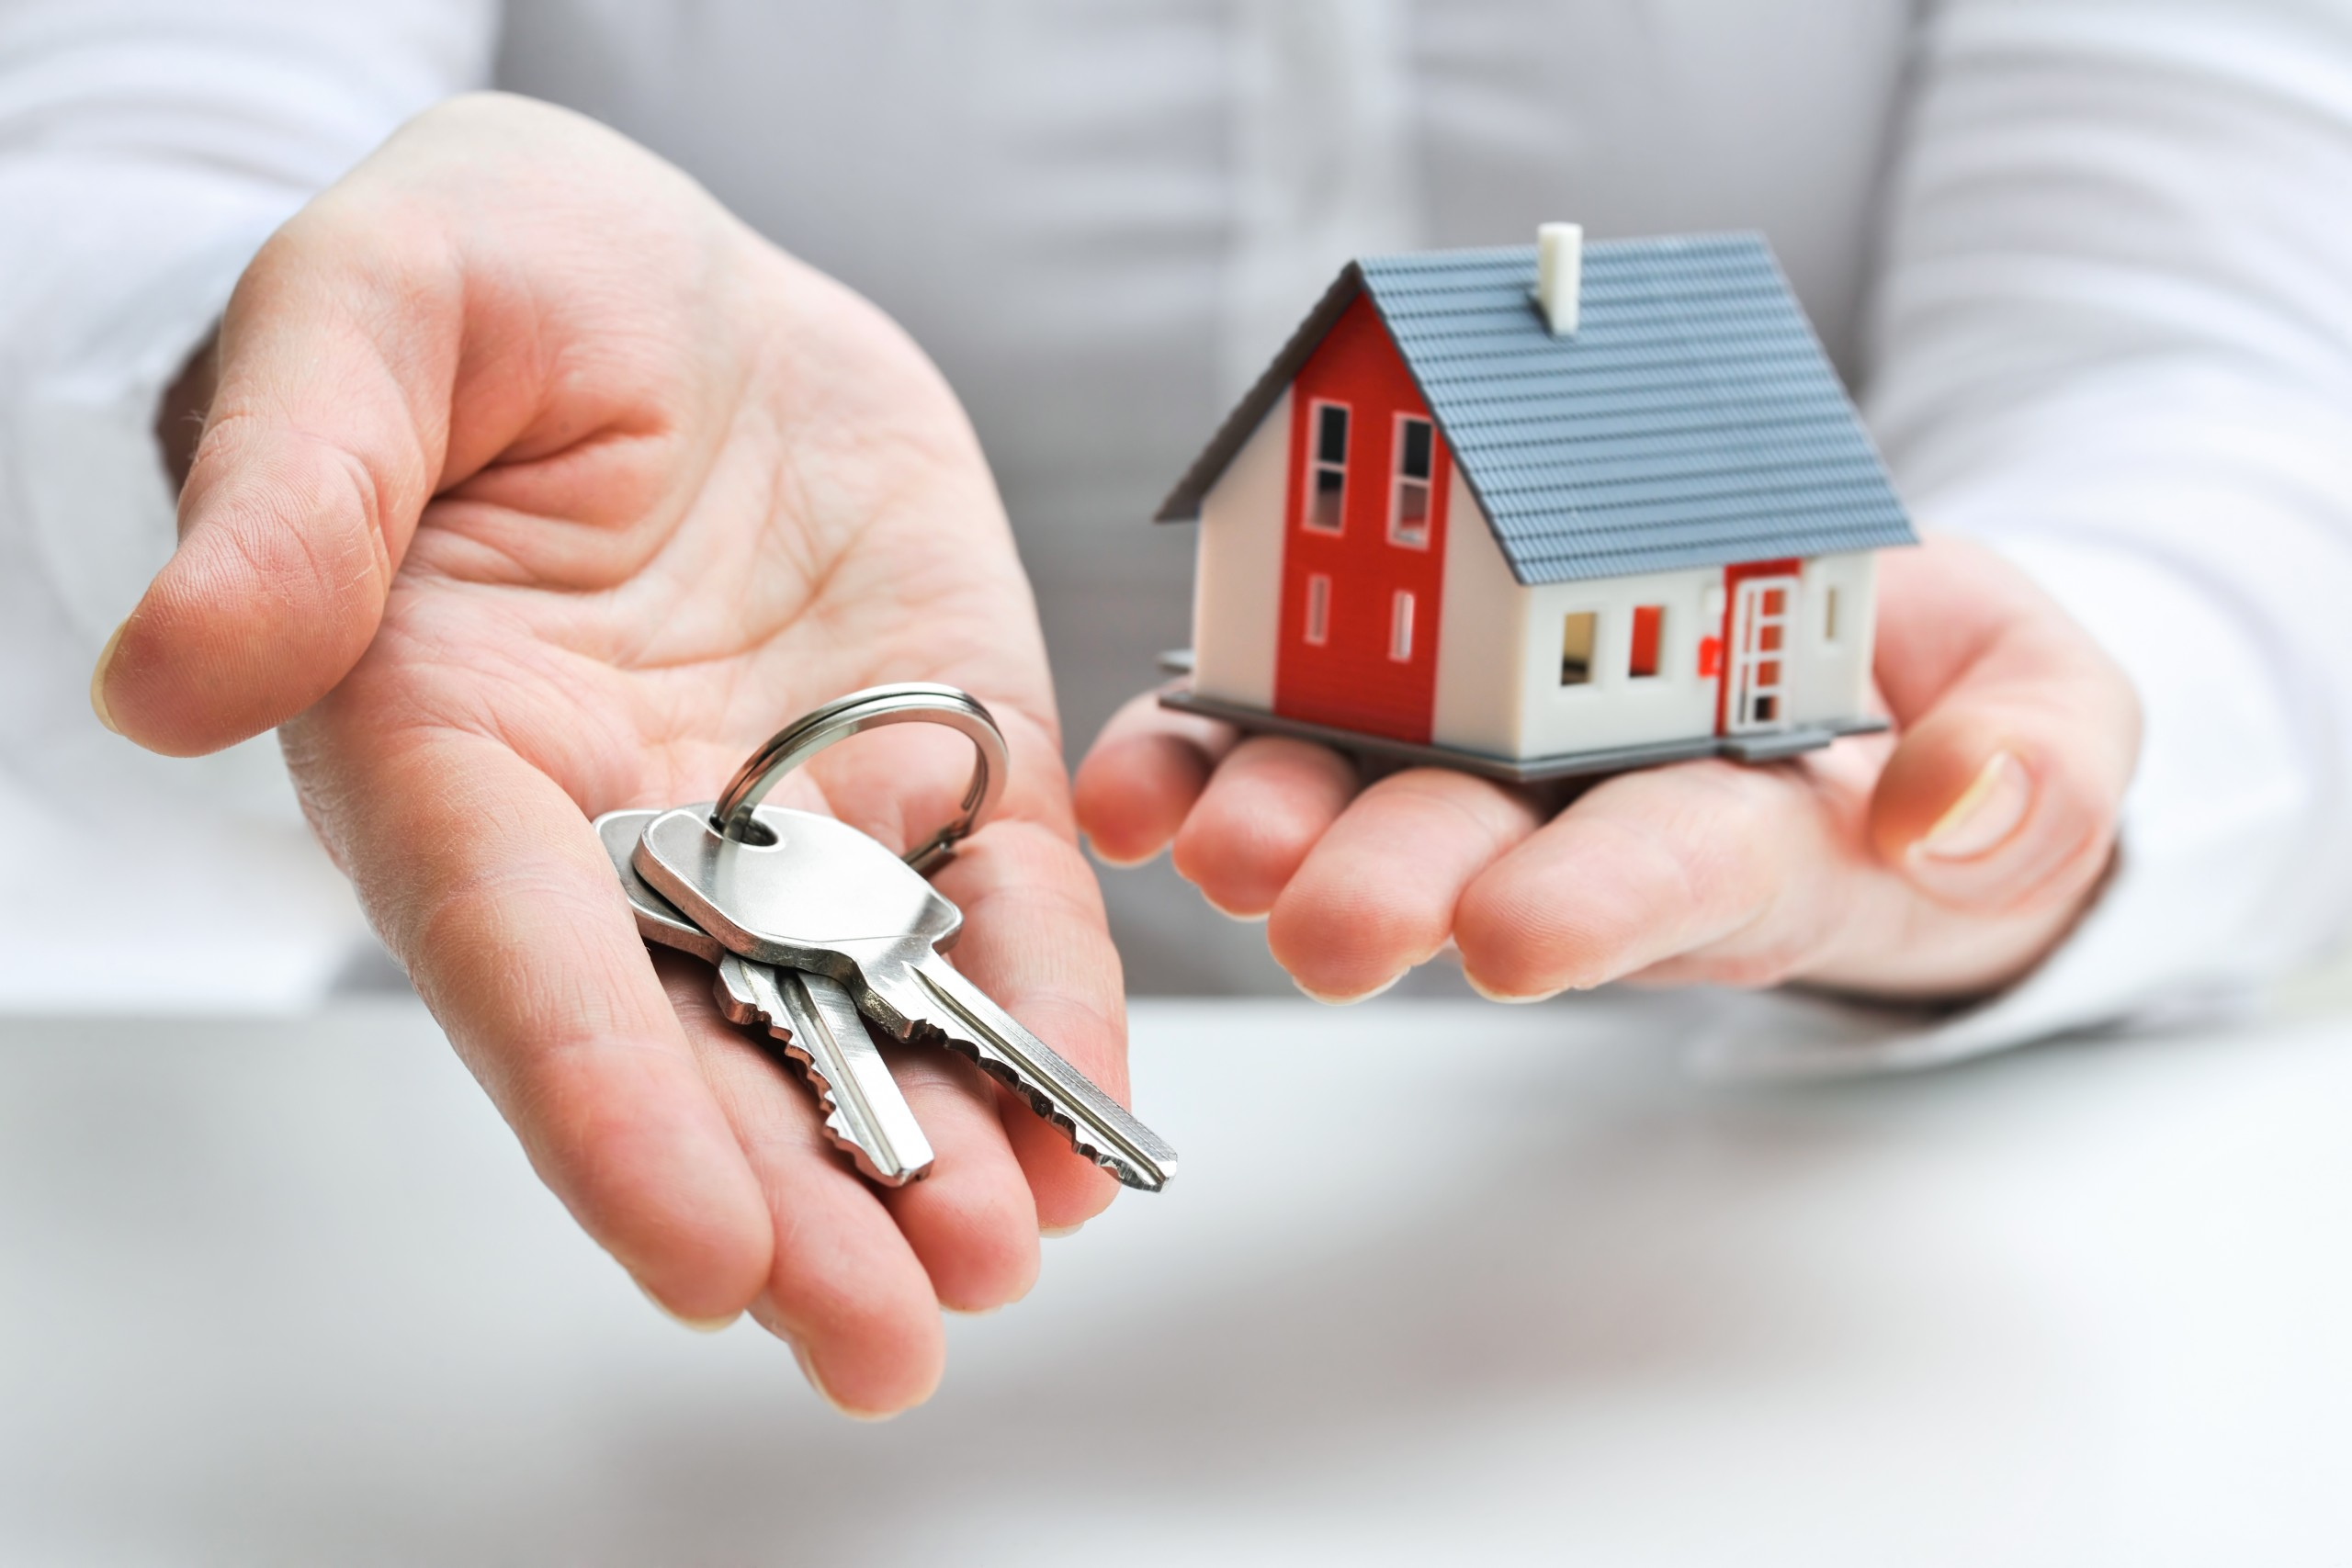 Real,estate,agent,with,house,model,and,keys